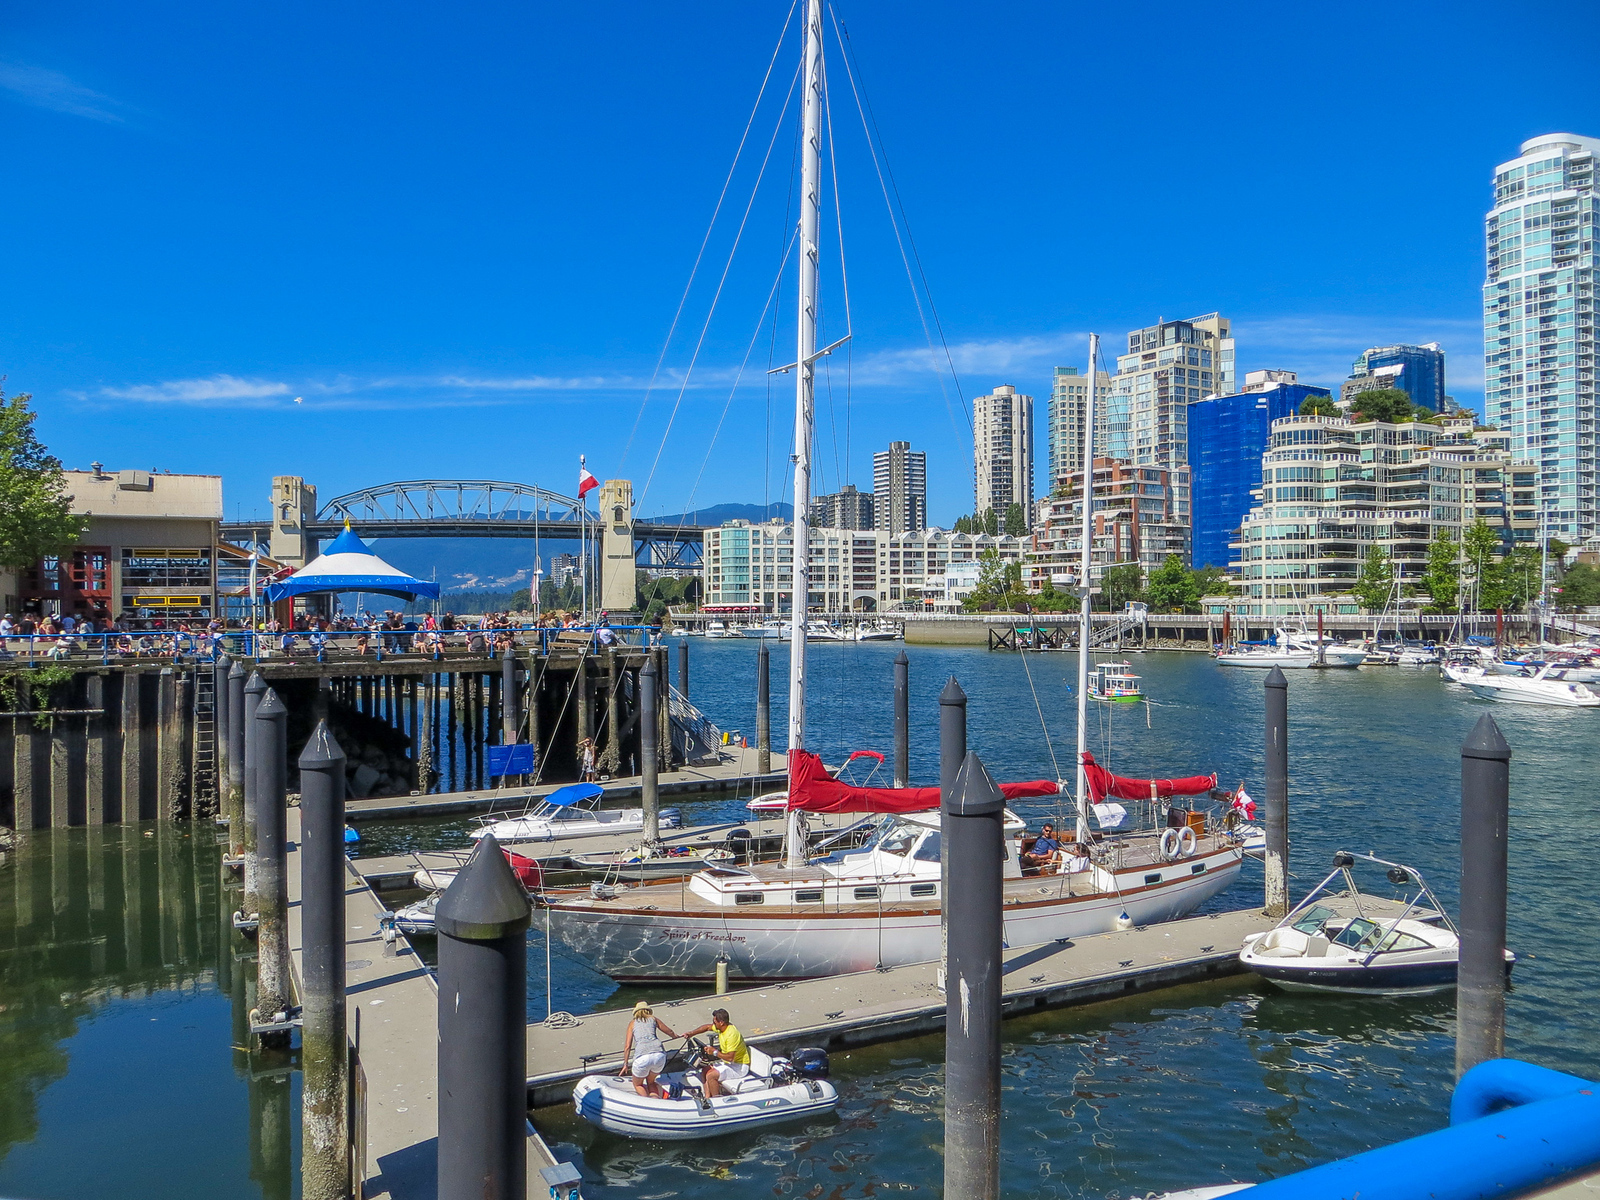 solo travel vancouver: don't skip visiting this gorgeous city